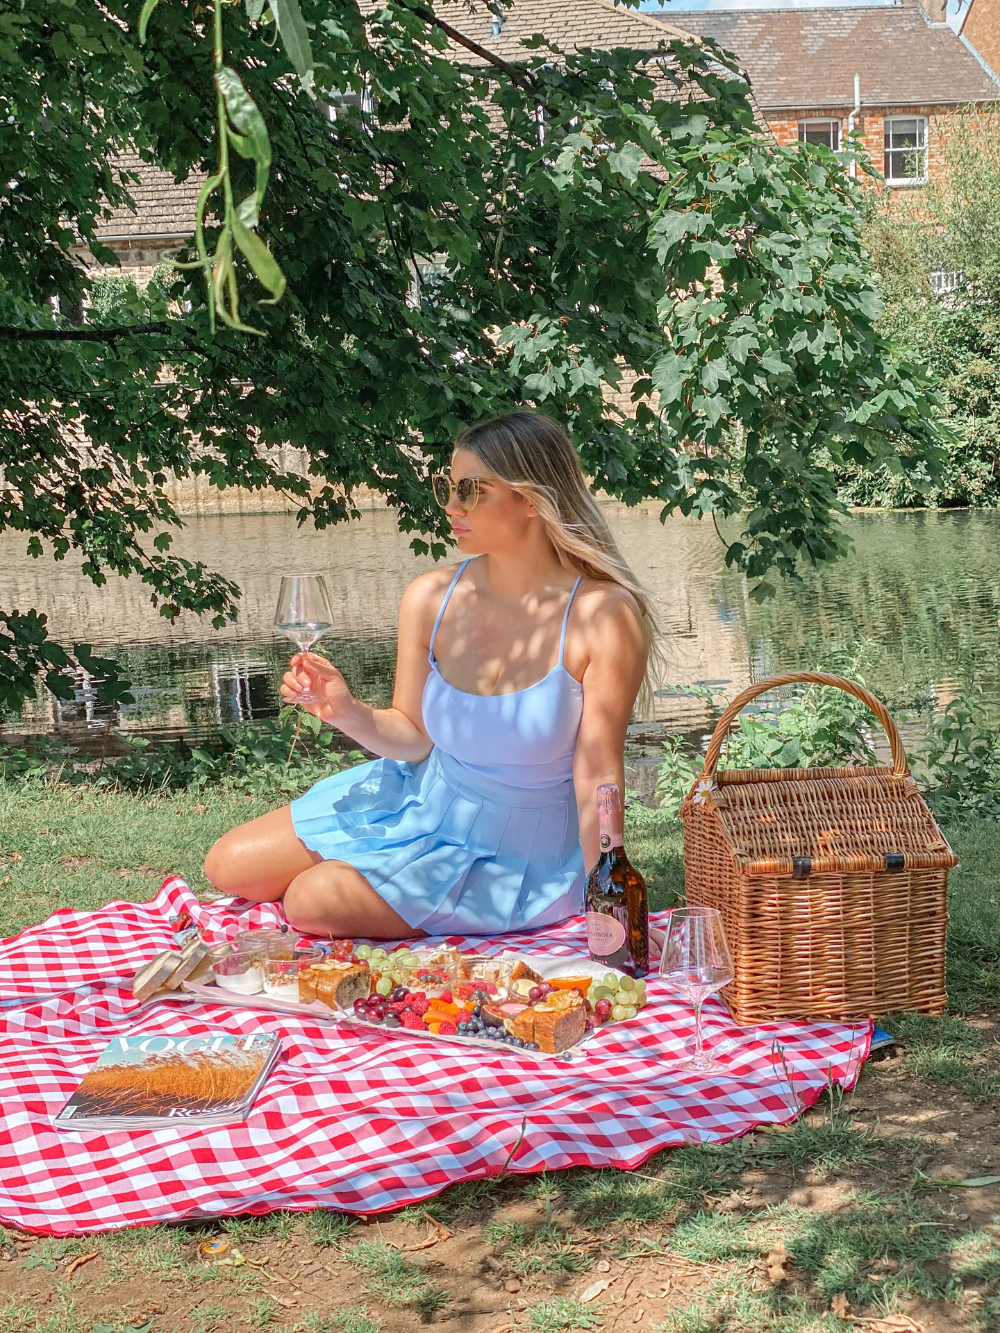 300+ How The British Picnic Saved Our Lockdown Summer